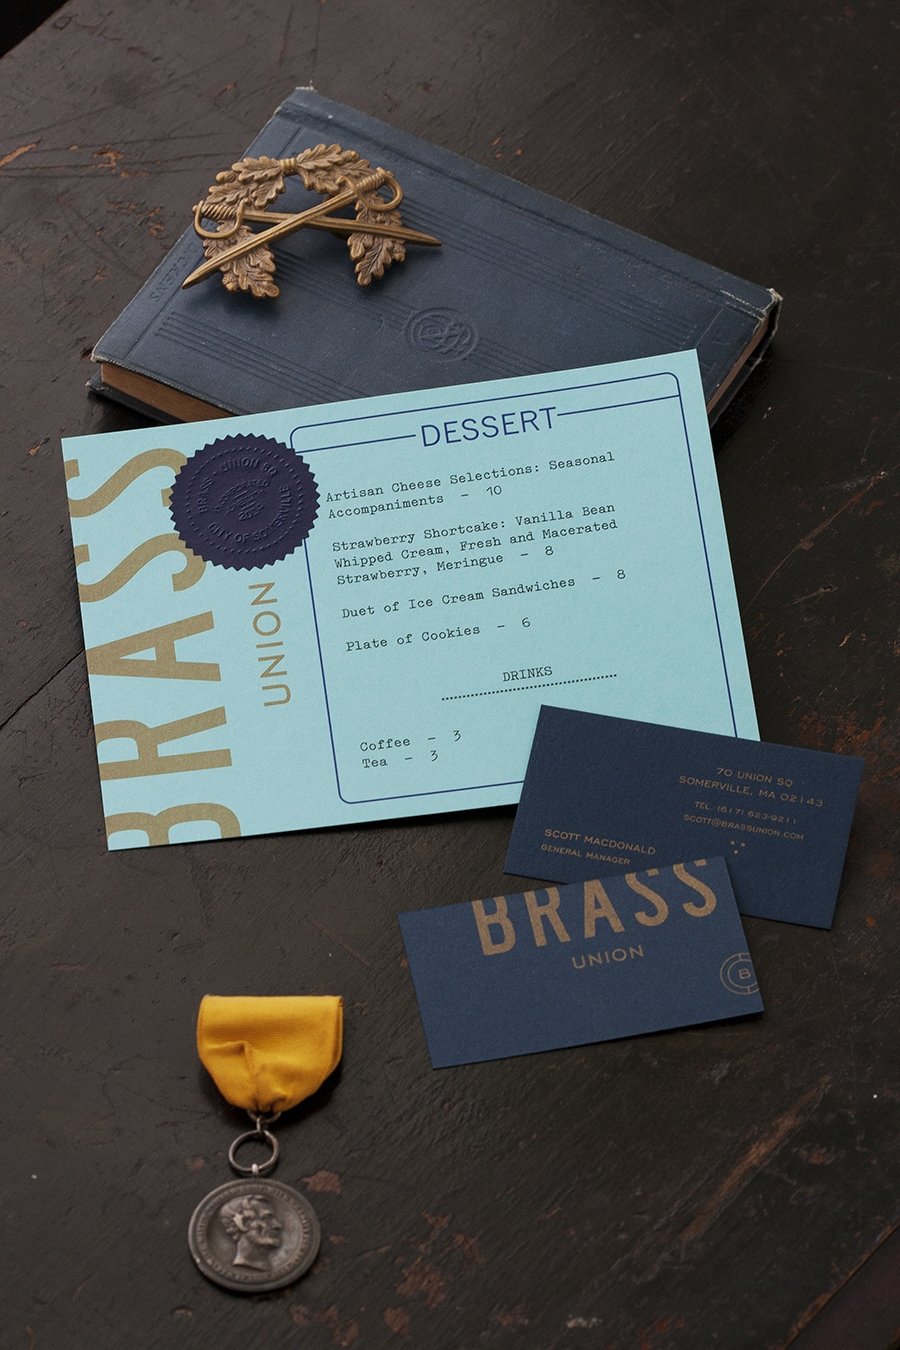 09-Brass-Union-Dessert-Card-by-Oat-on-BPO.jpg